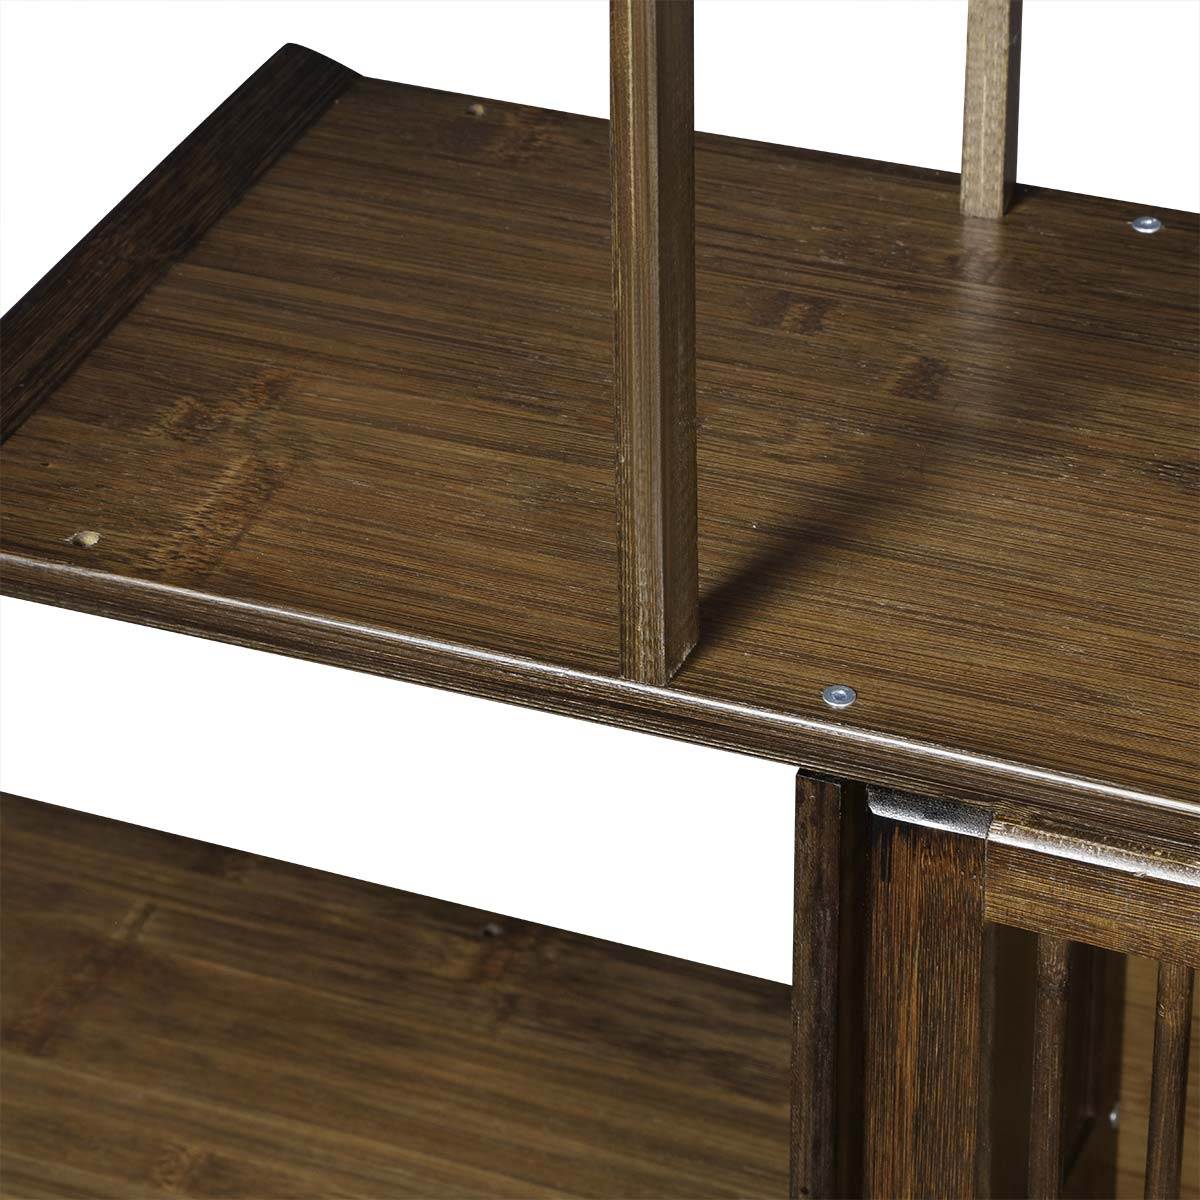 2pc Modern Counter Stools Pub Bar Stools with Backs Kitchen Stools Silver